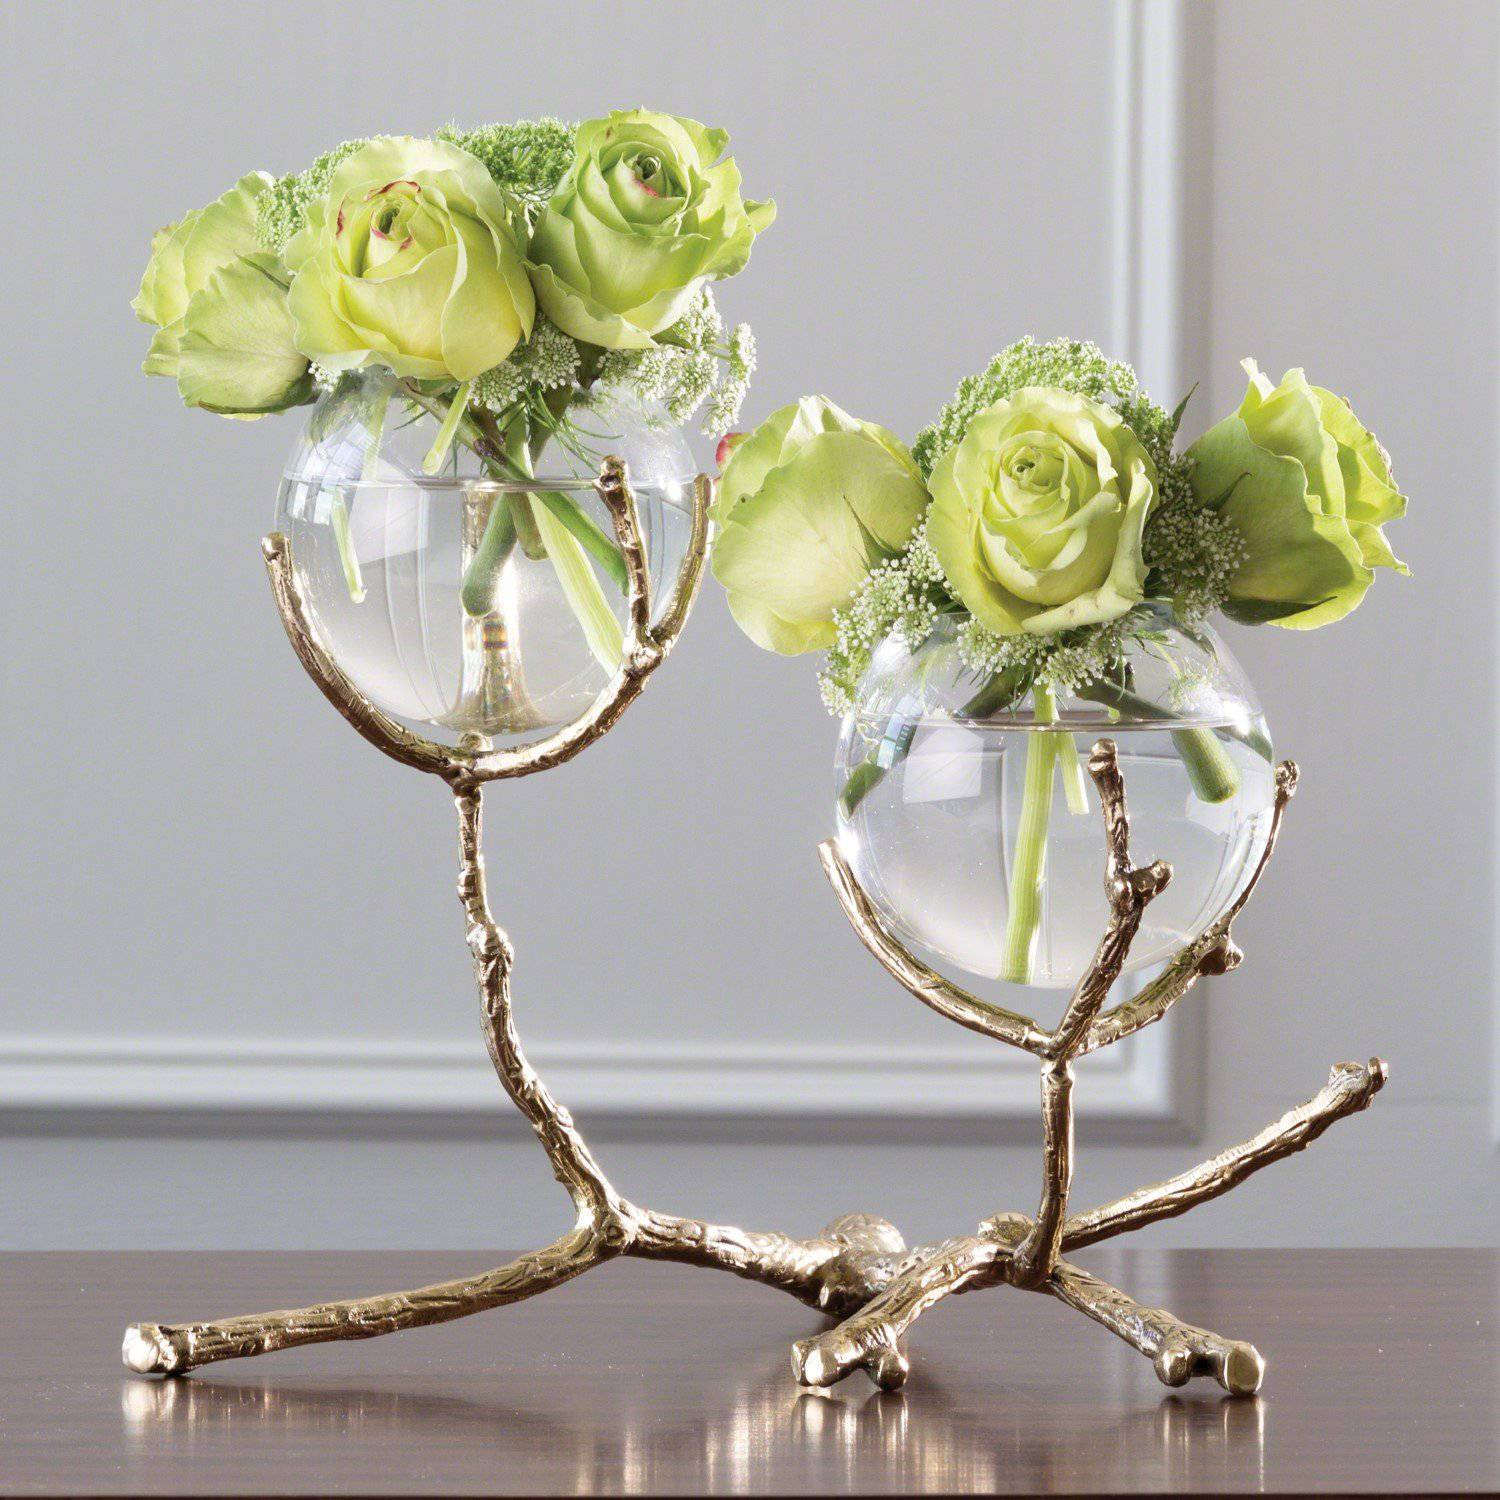 Twig 2 Vase Holder-Brass - Benzie Gifts